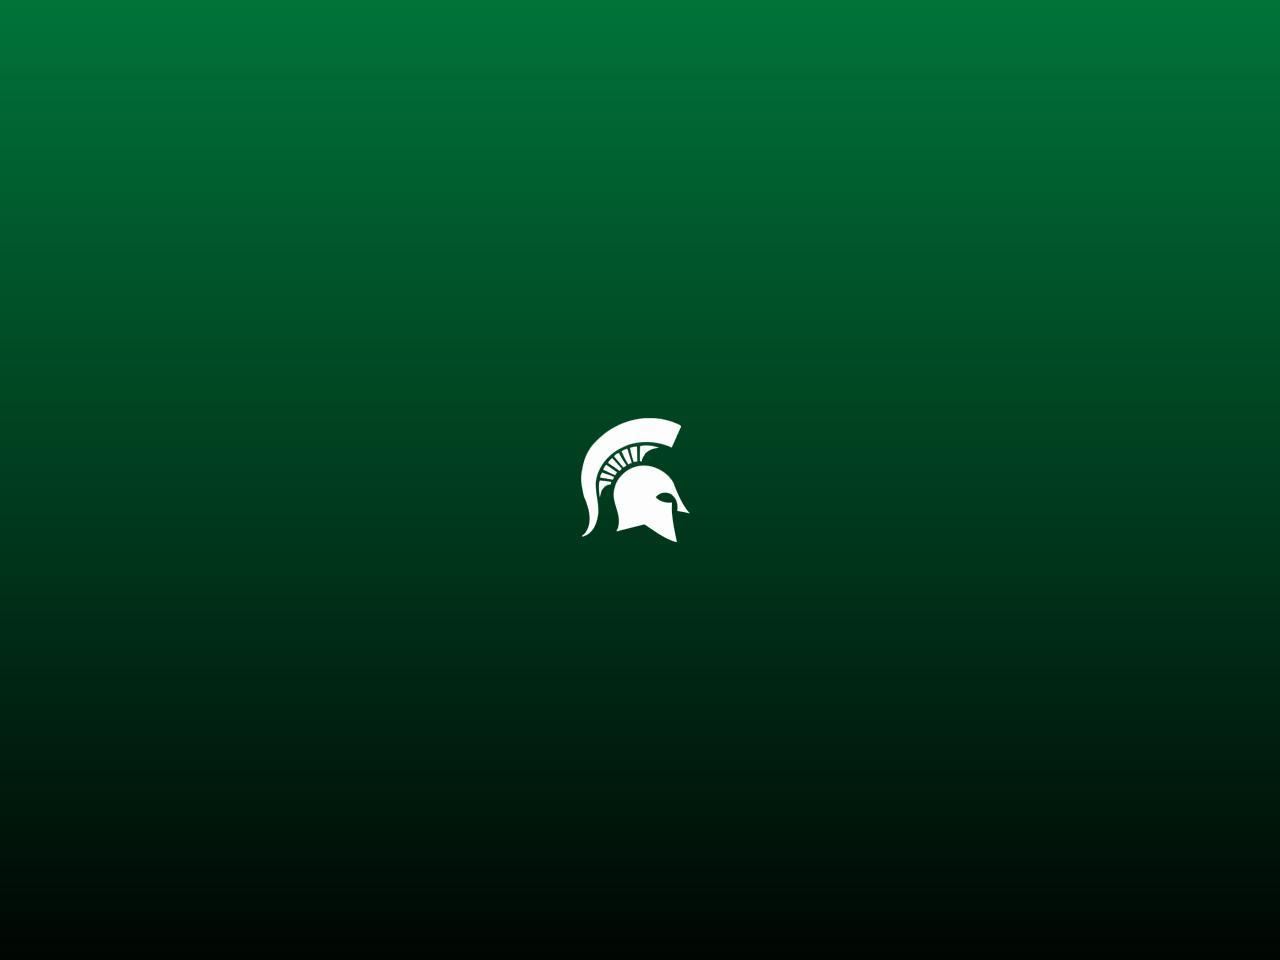 spartan iphone 5 wallpaper - photo #18